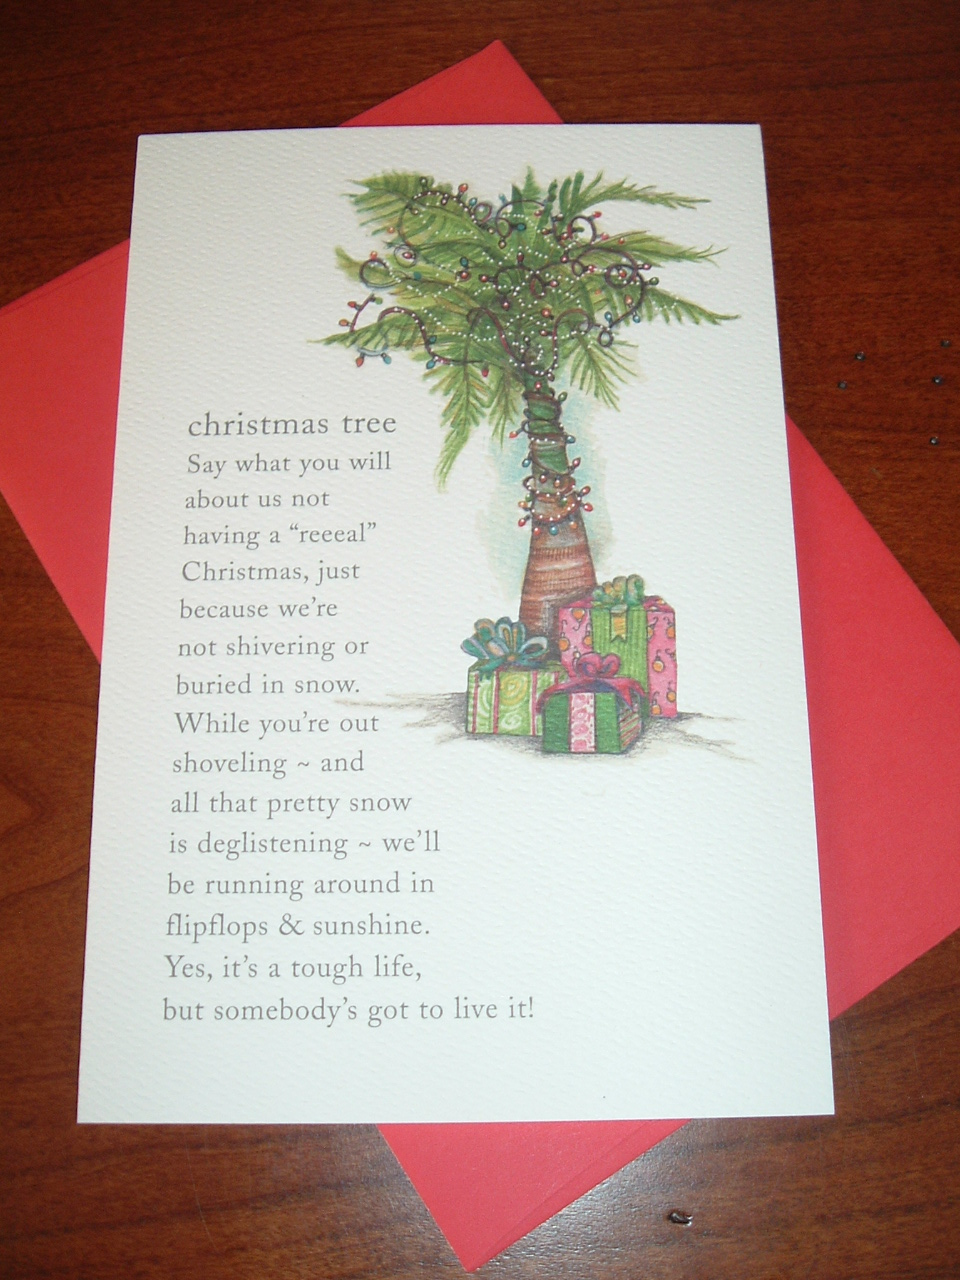 Christmas Card Etiquette After Divorce Holliday Decorations